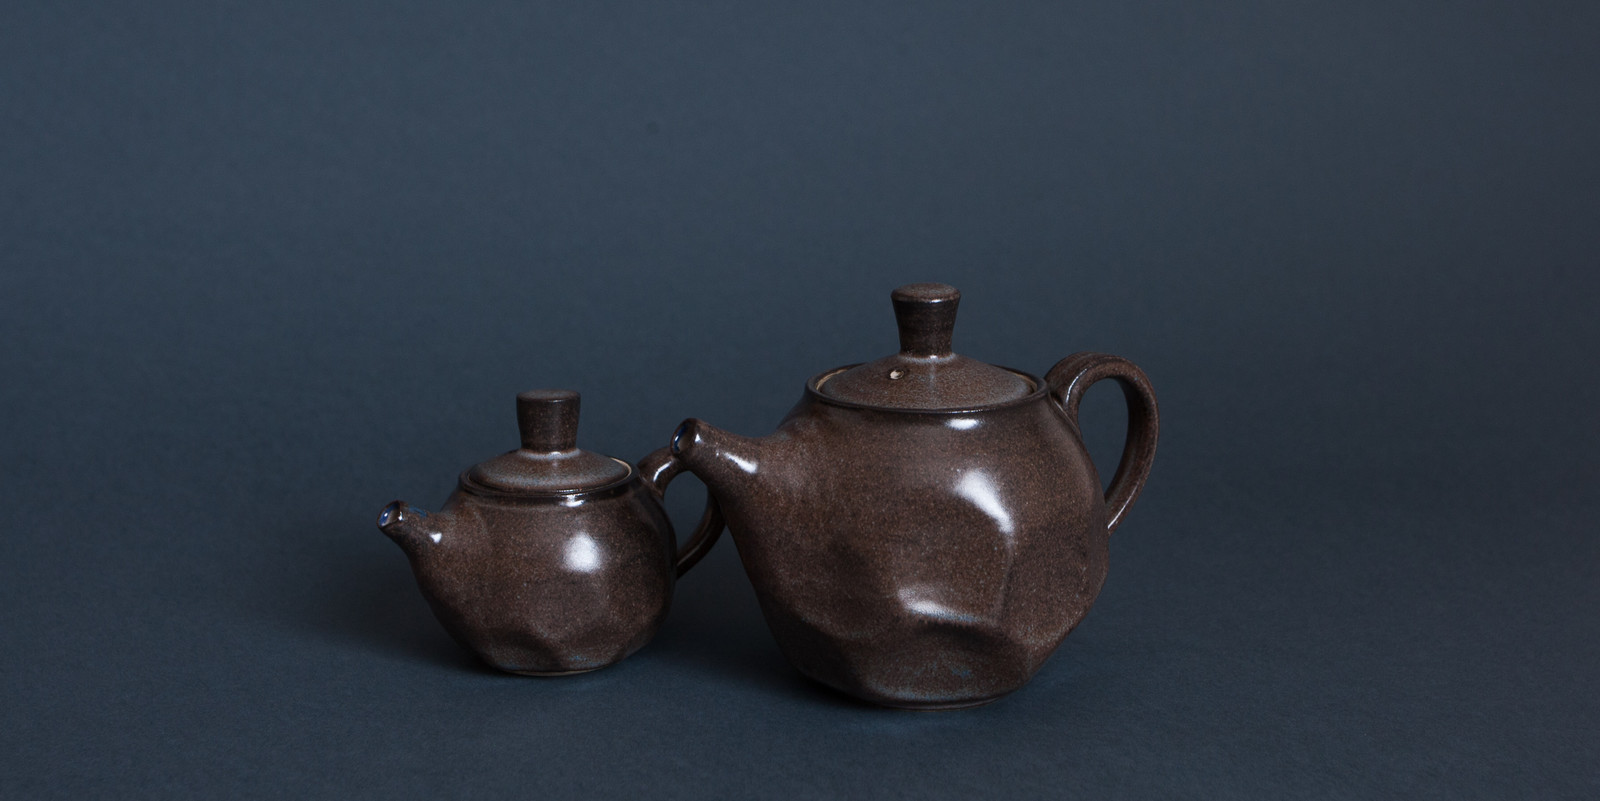 Deformed Teapots